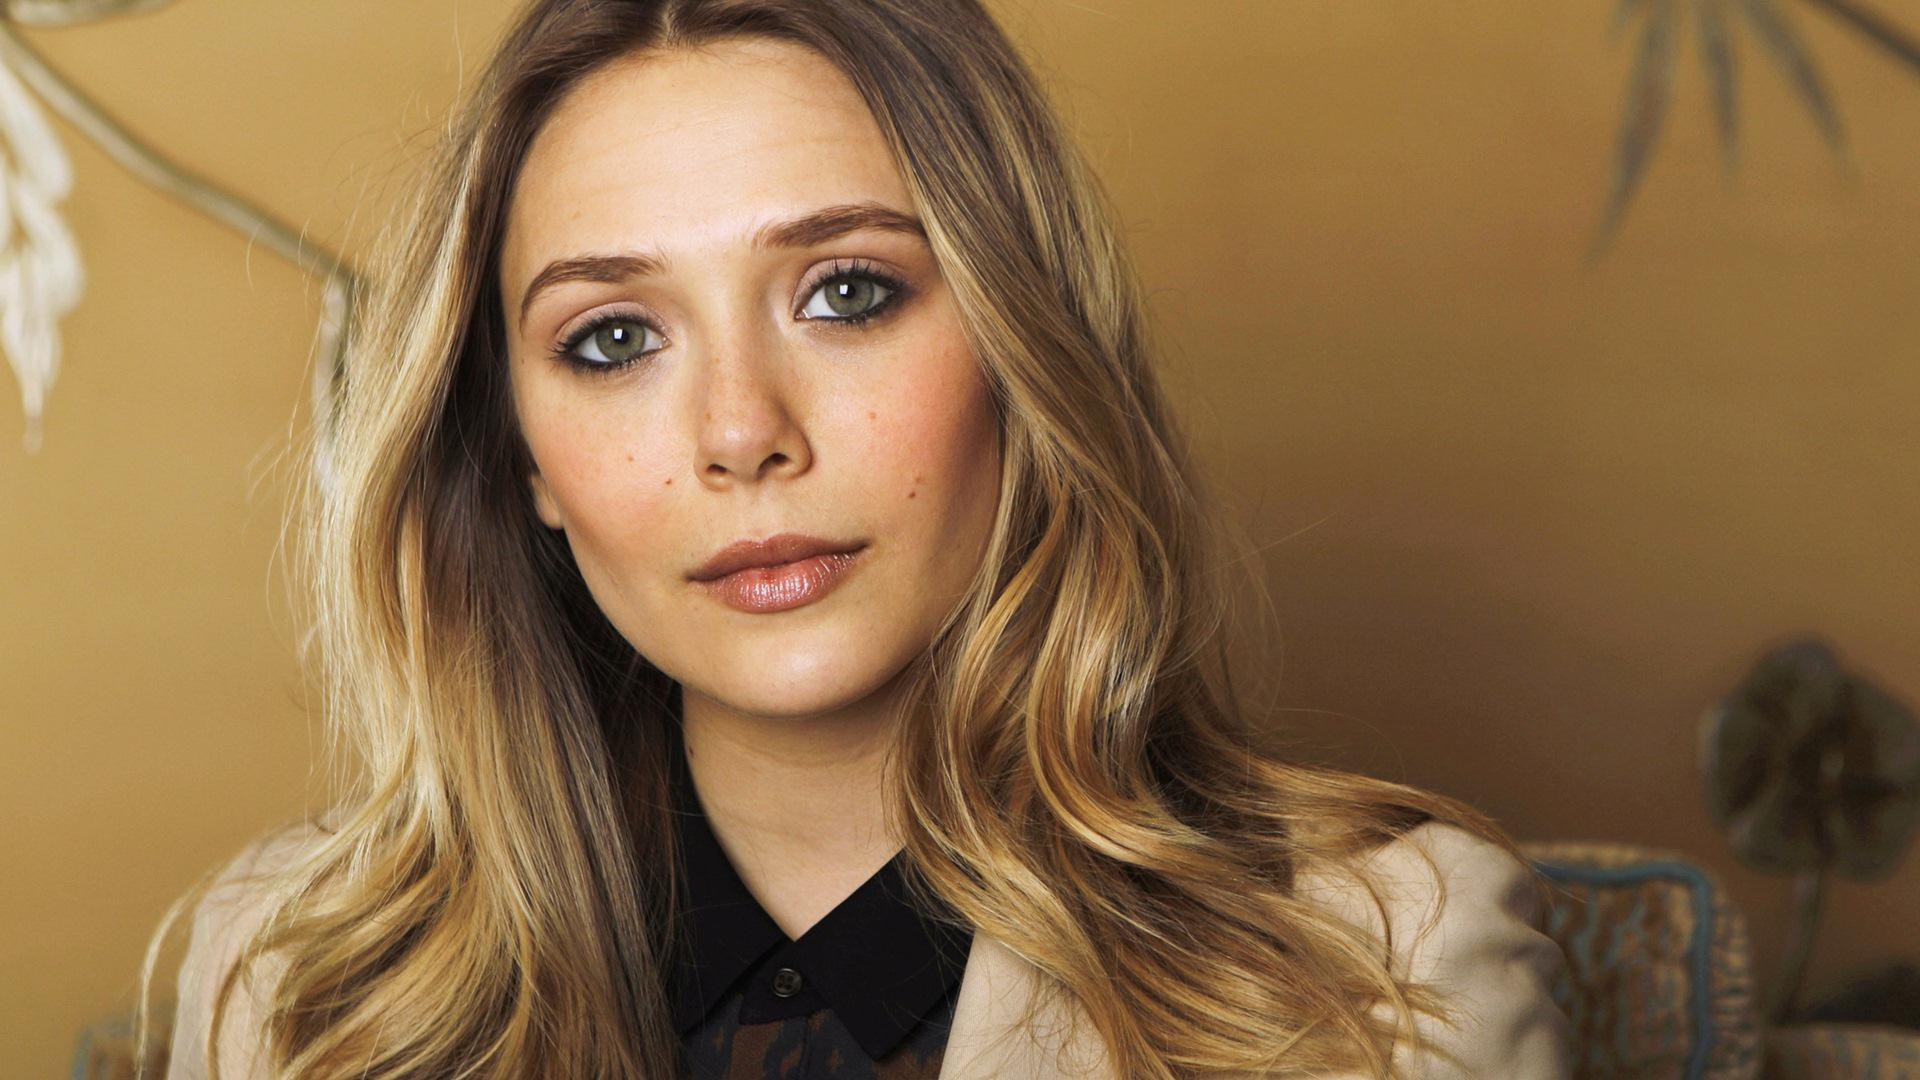 Elizabeth Olsen Actress Pictures 1920x1080